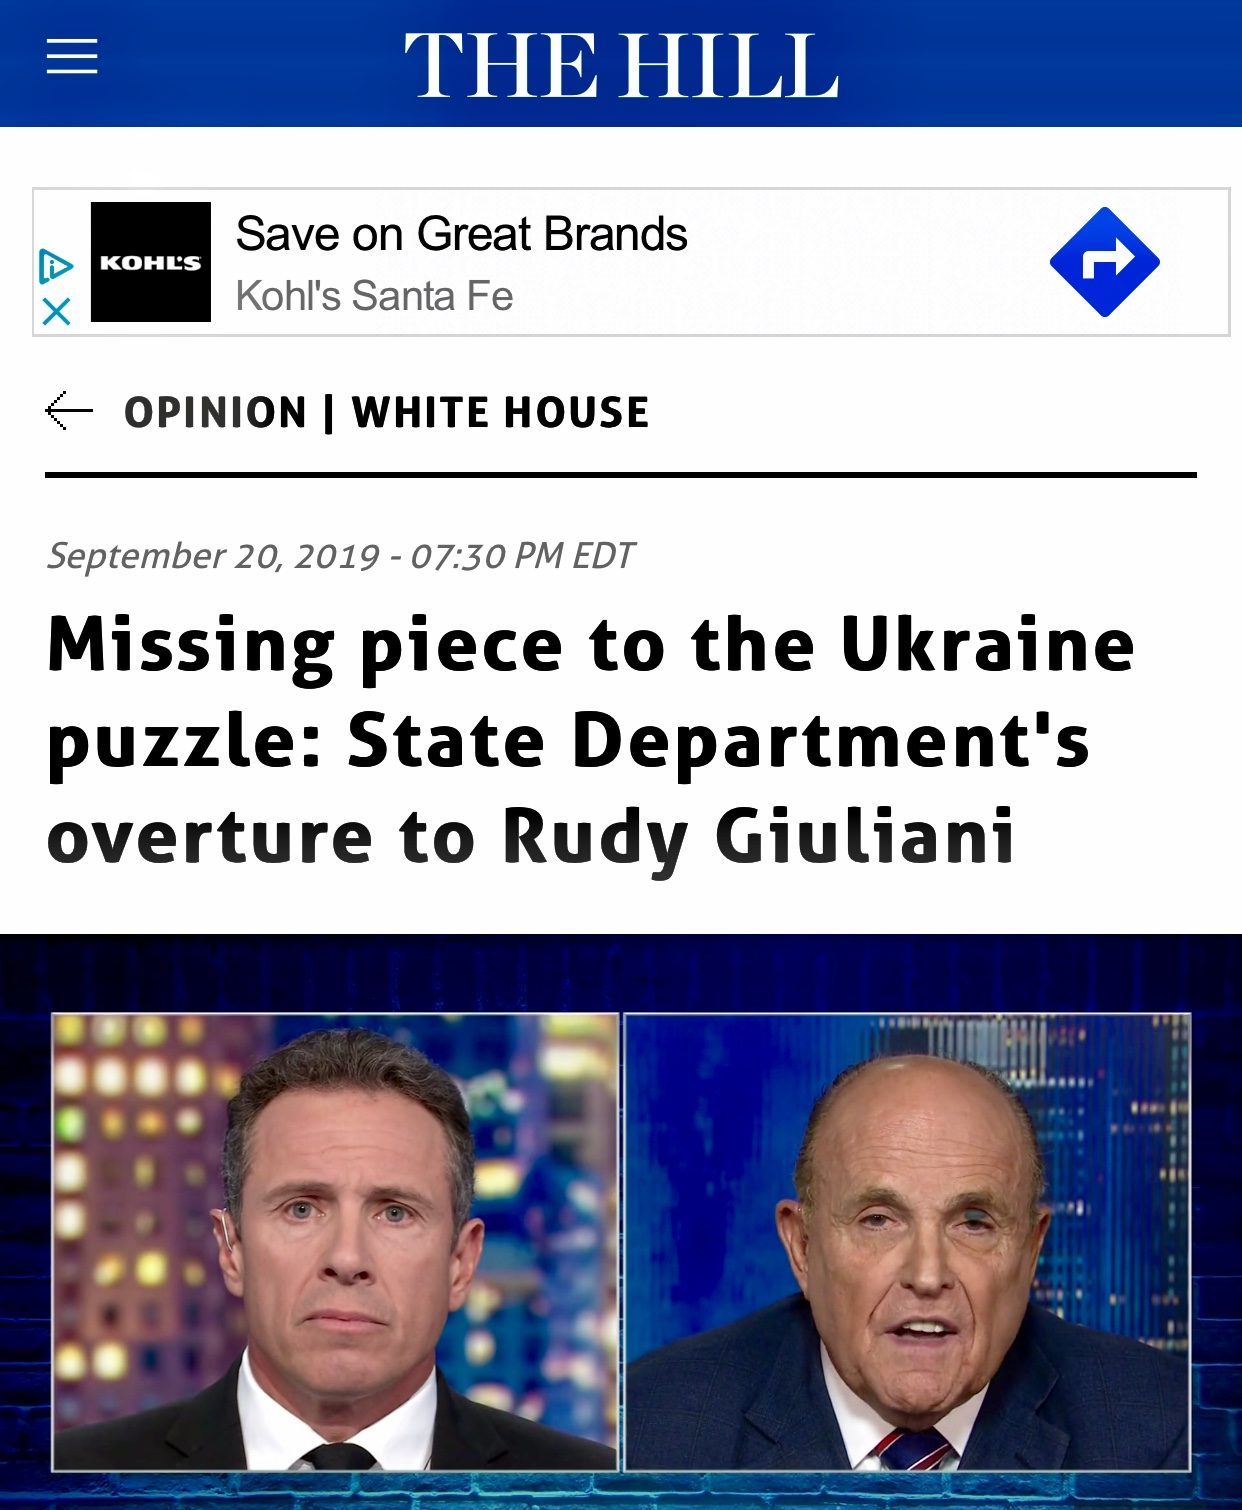 Missing Piece To The Ukraine Puzzle: State Dept Overture to Rudy Giuliani